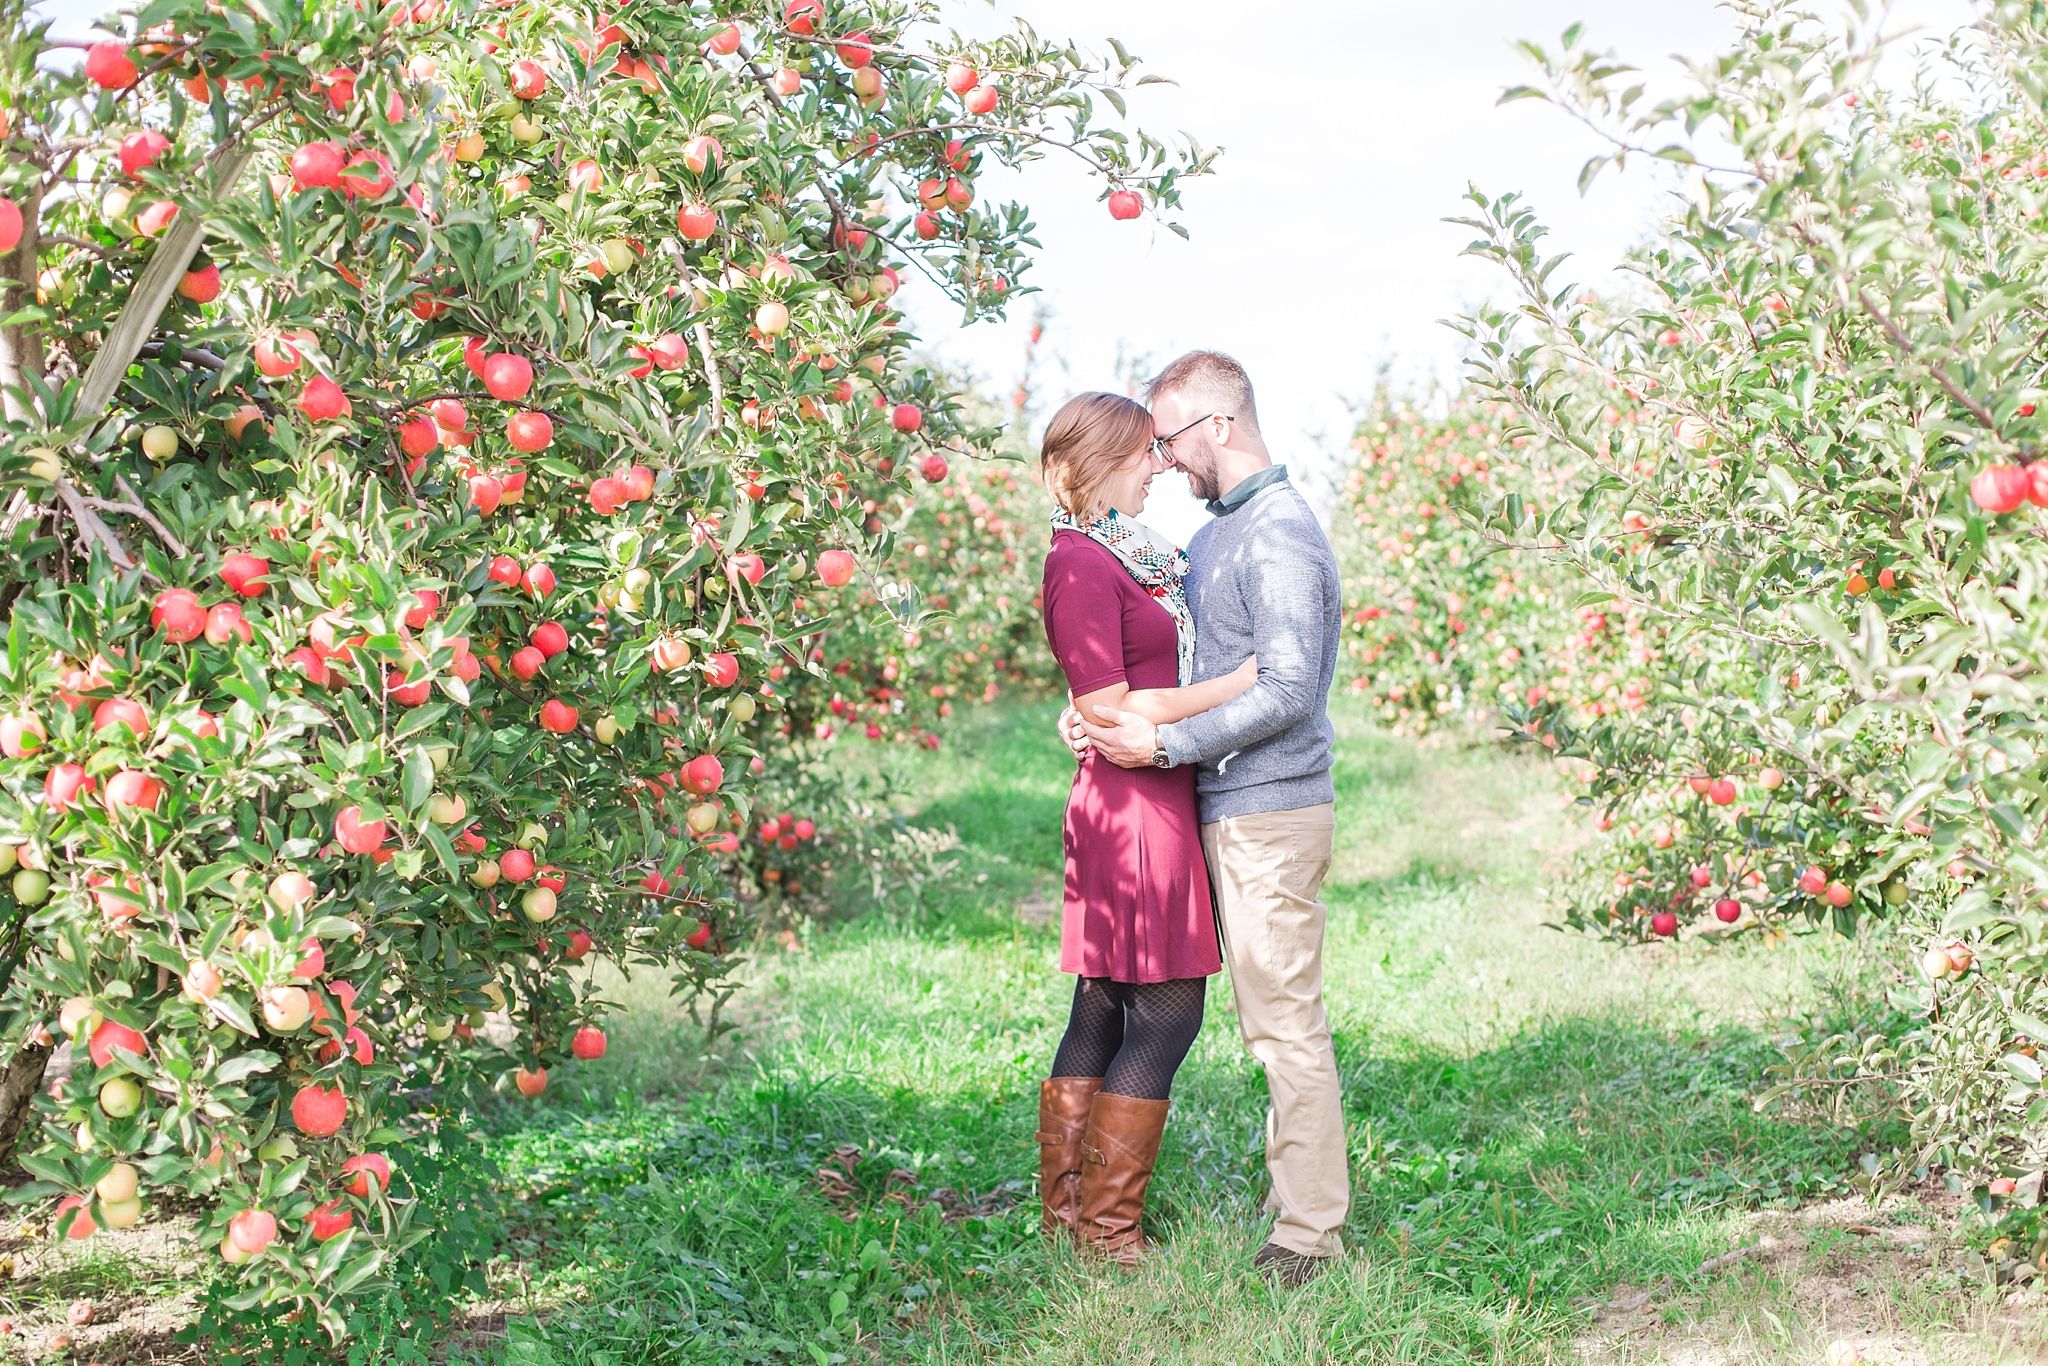 playful-fall-engagement-photos-at-hy's-cider-mill-ochard-in-bruce-township-michigan-by-courtney-carolyn-photography_0027.jpg